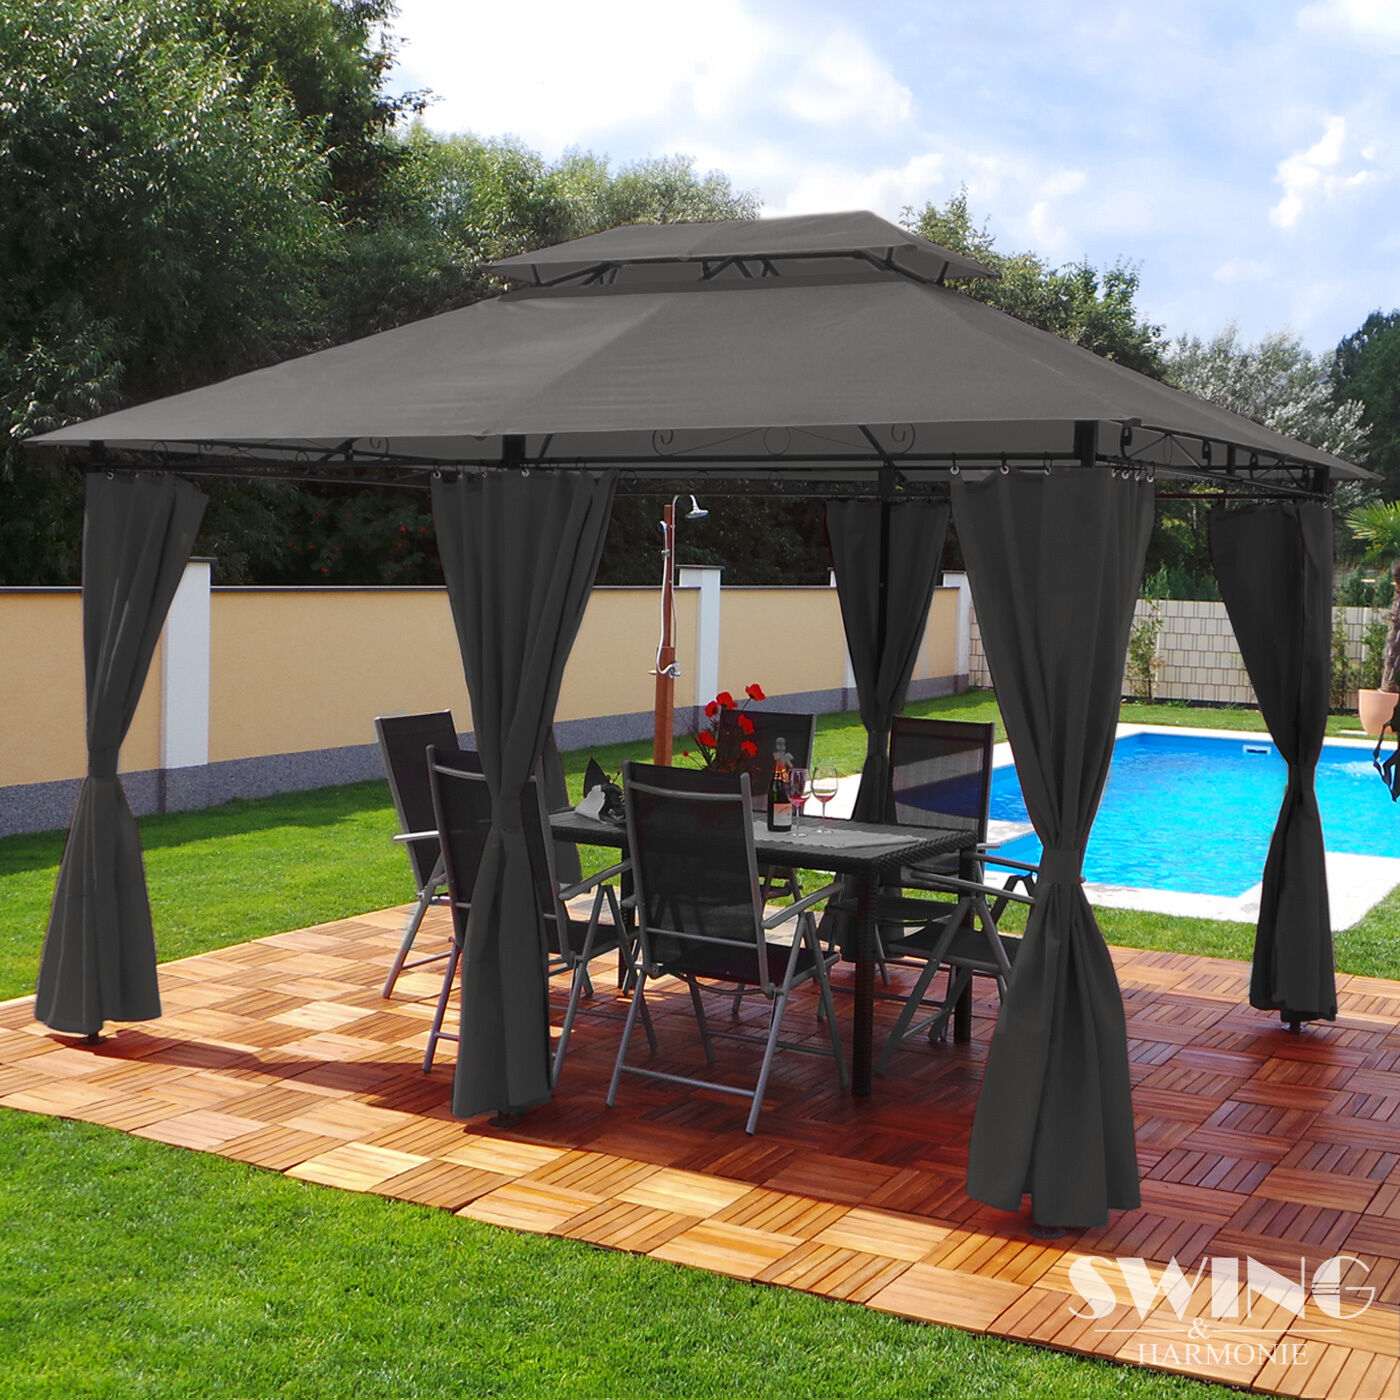 luxus pavillon 3x4m garten pavilon gartenm bel pavillion partyzelt gartenzelt eur 199 00. Black Bedroom Furniture Sets. Home Design Ideas